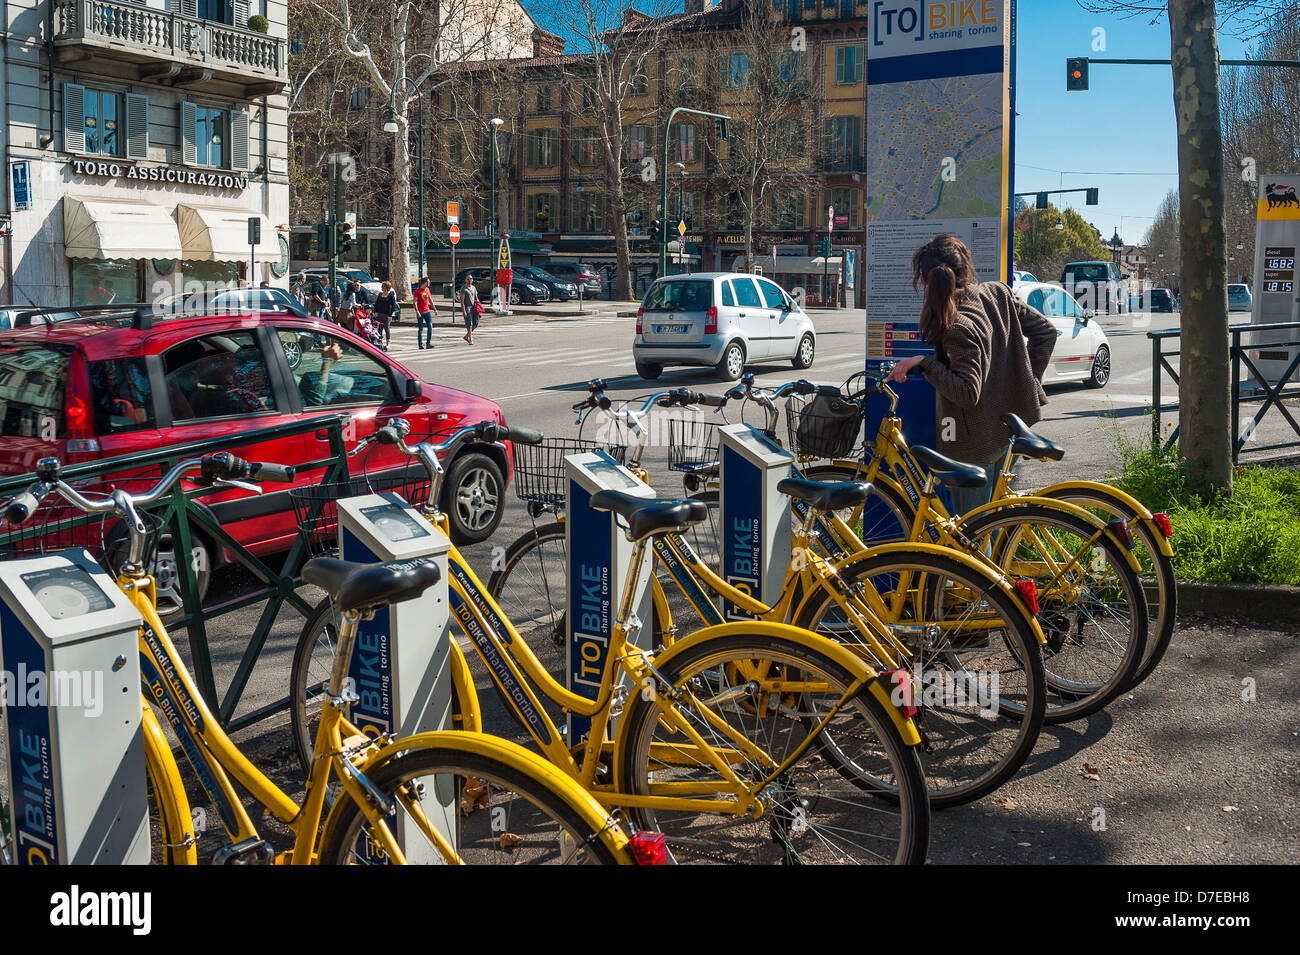 Europe Italy Piedmont Turin municipal bicycles for hire on the streets of the city - Stock Image